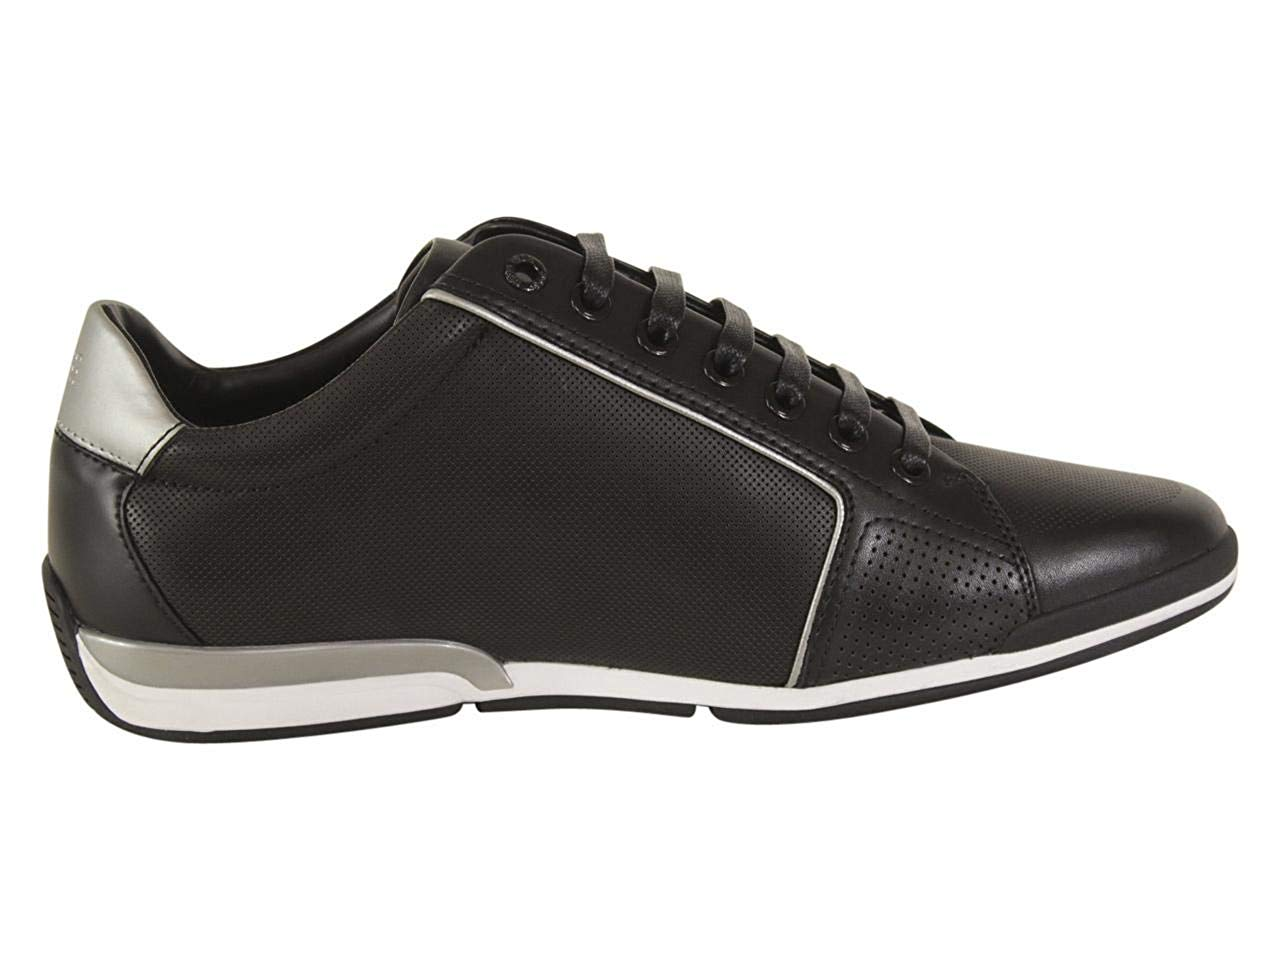 HUGO BOSS SATURN_LOWP_LOGO LACE-UP SNEAKER 50408040-001